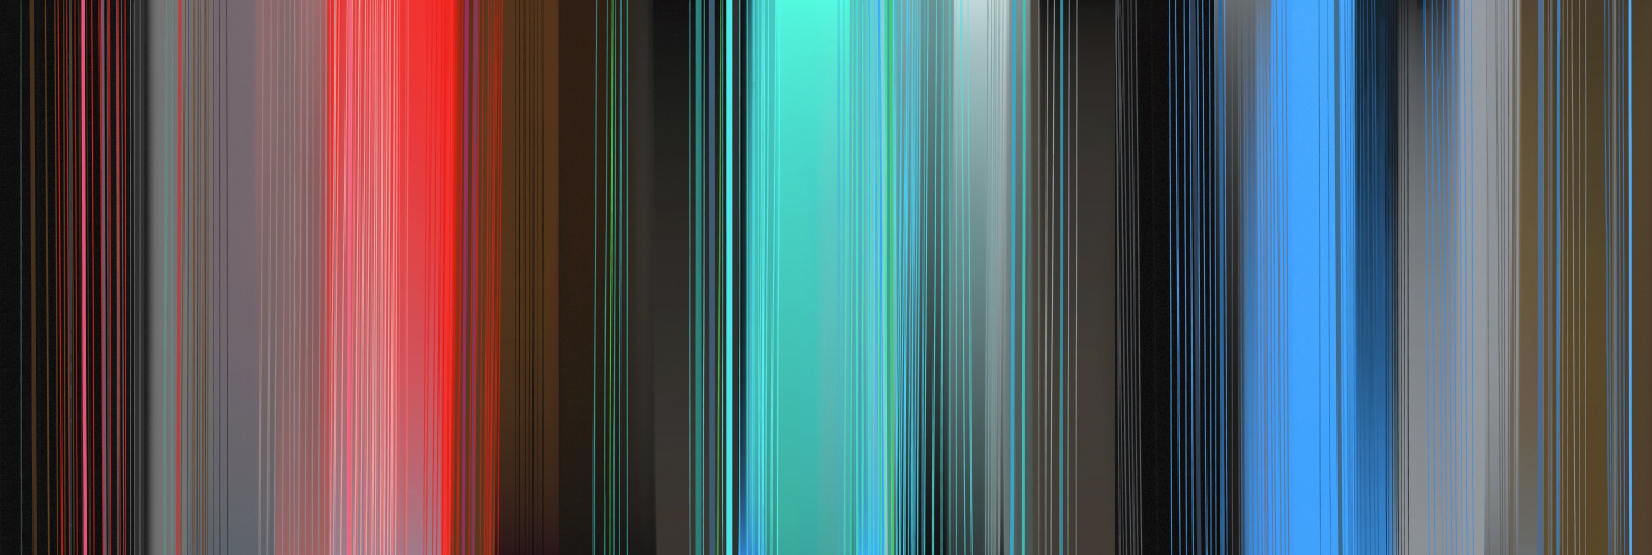 Abstract paintings, art prints, Quadratic Triptych Series by Mark Landkamer